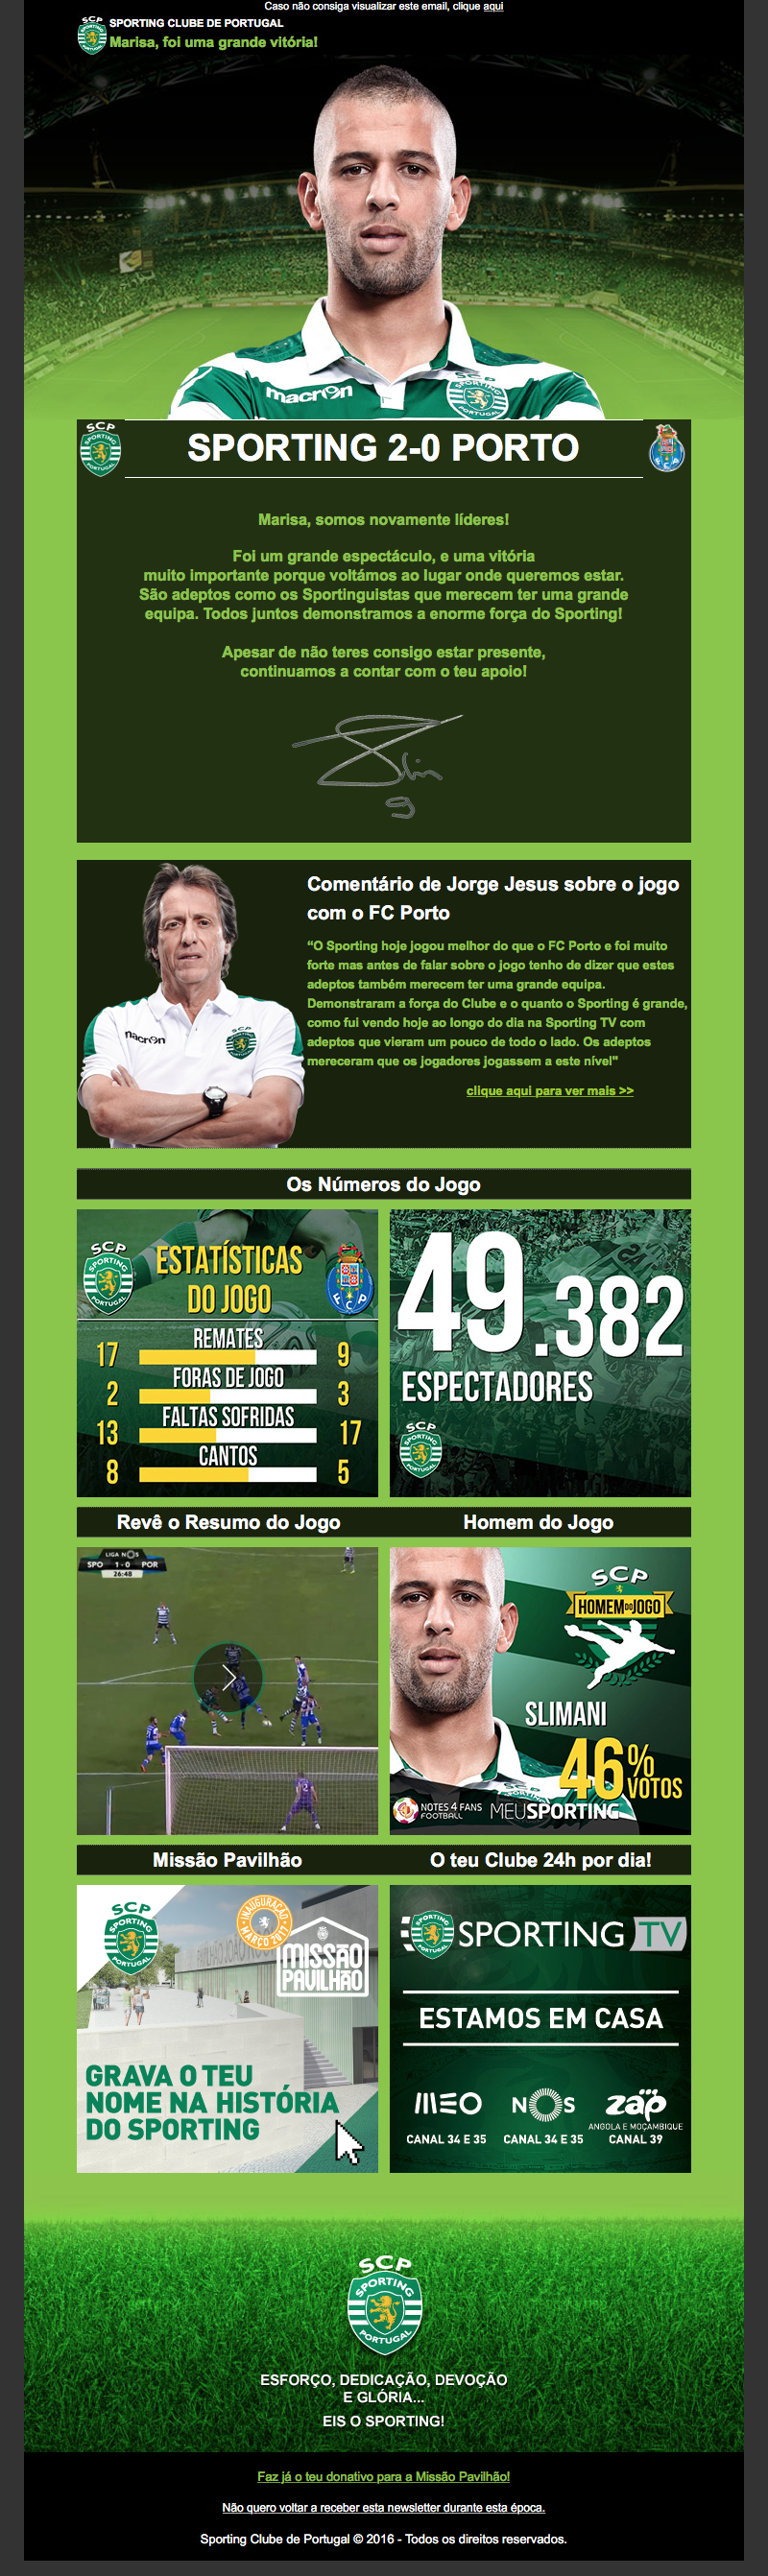 Sporting Clube Portugal Newsletter Design And It Includes My Favorite Player Slimani Newsletter Design Website Design Interactive